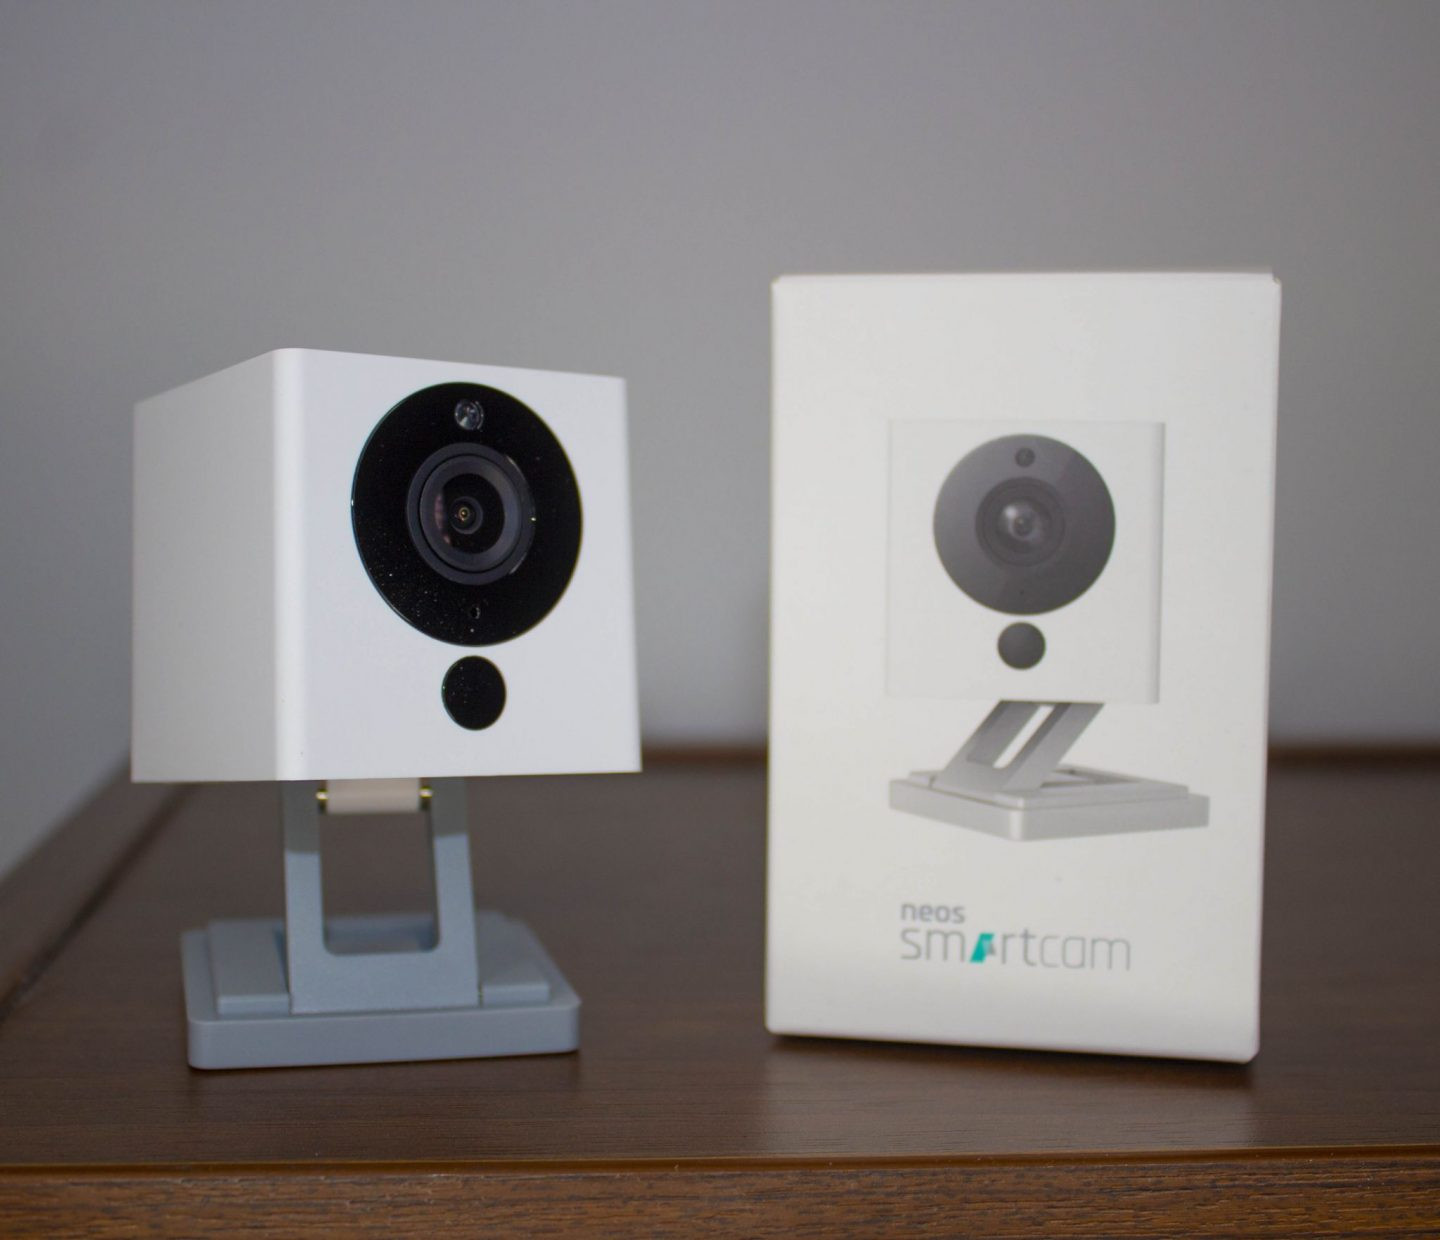 Neos, Smartcam review, smartcam reviews, Neos Smartcam review, home security, improved home security, family home, dad blog, dadbloguk, dadbloguk.com